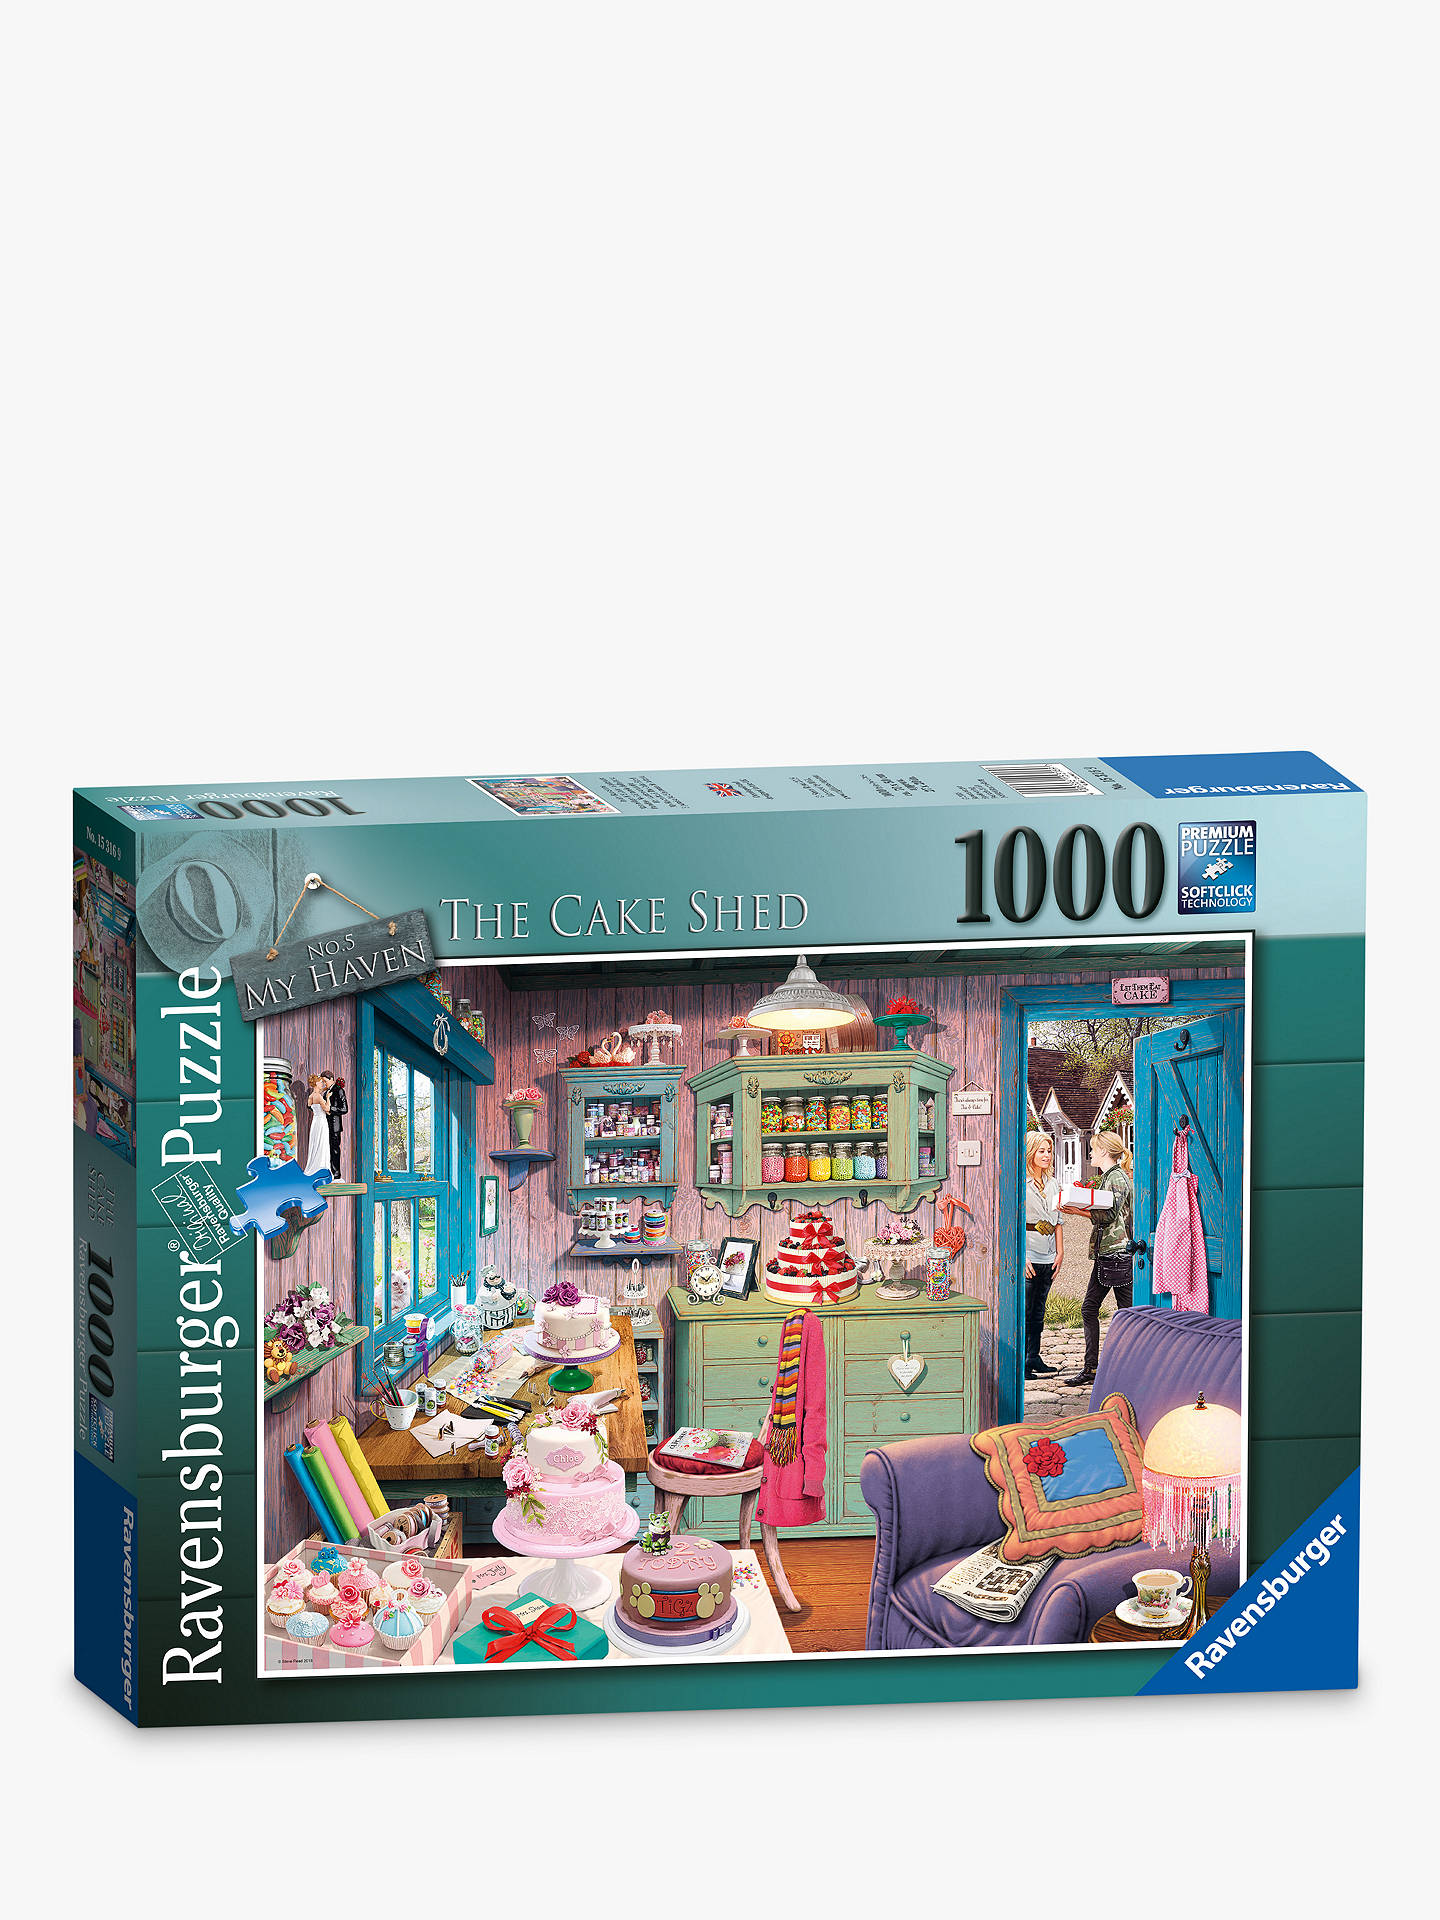 Buy Ravensburger The Cake Shed Jigsaw Puzzle, 1000 pieces Online at johnlewis.com